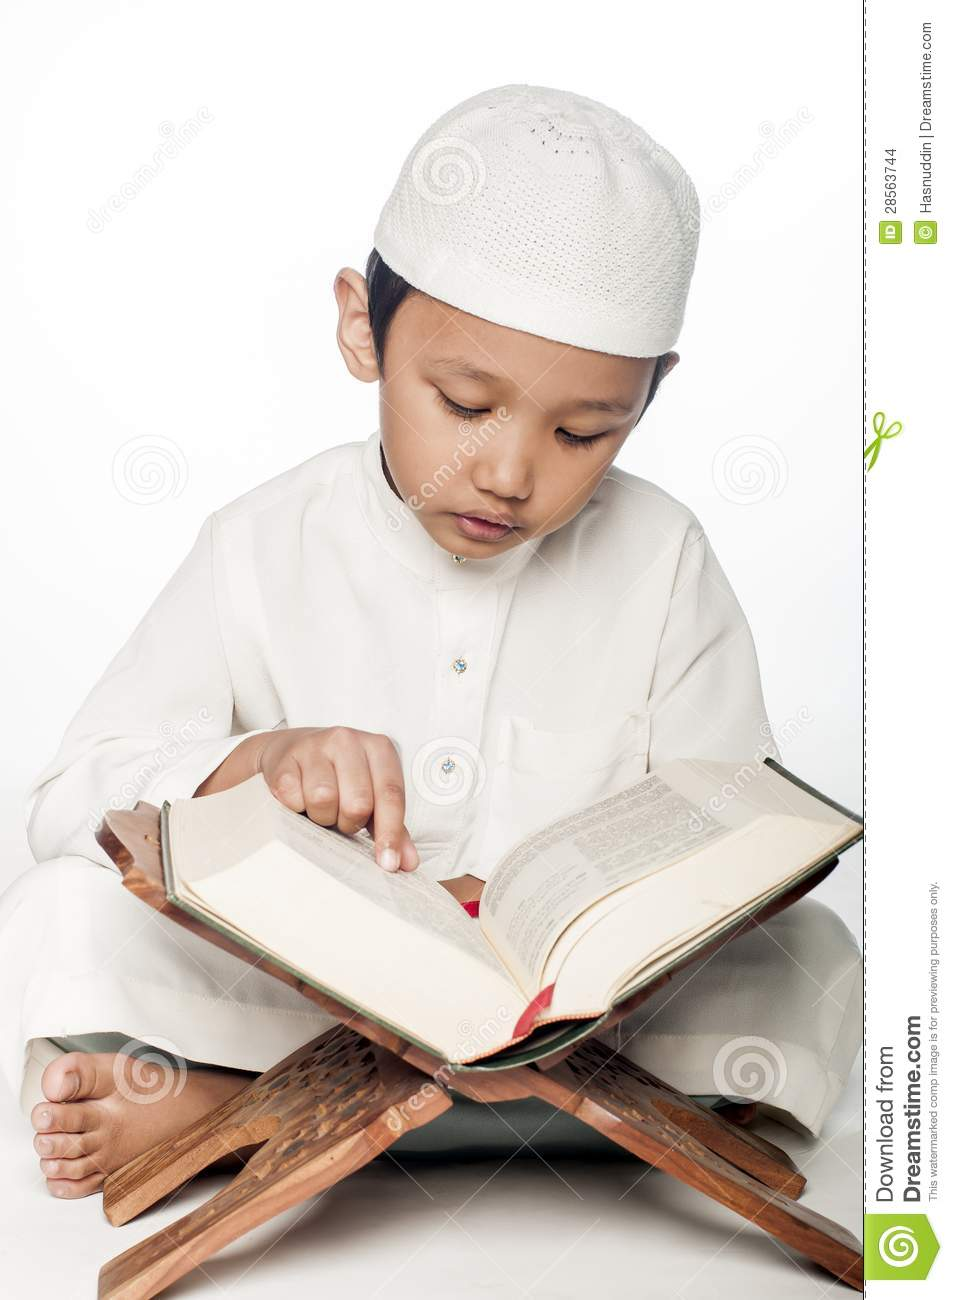 little muslim boy wearing islamic attire reading the holy Quran.